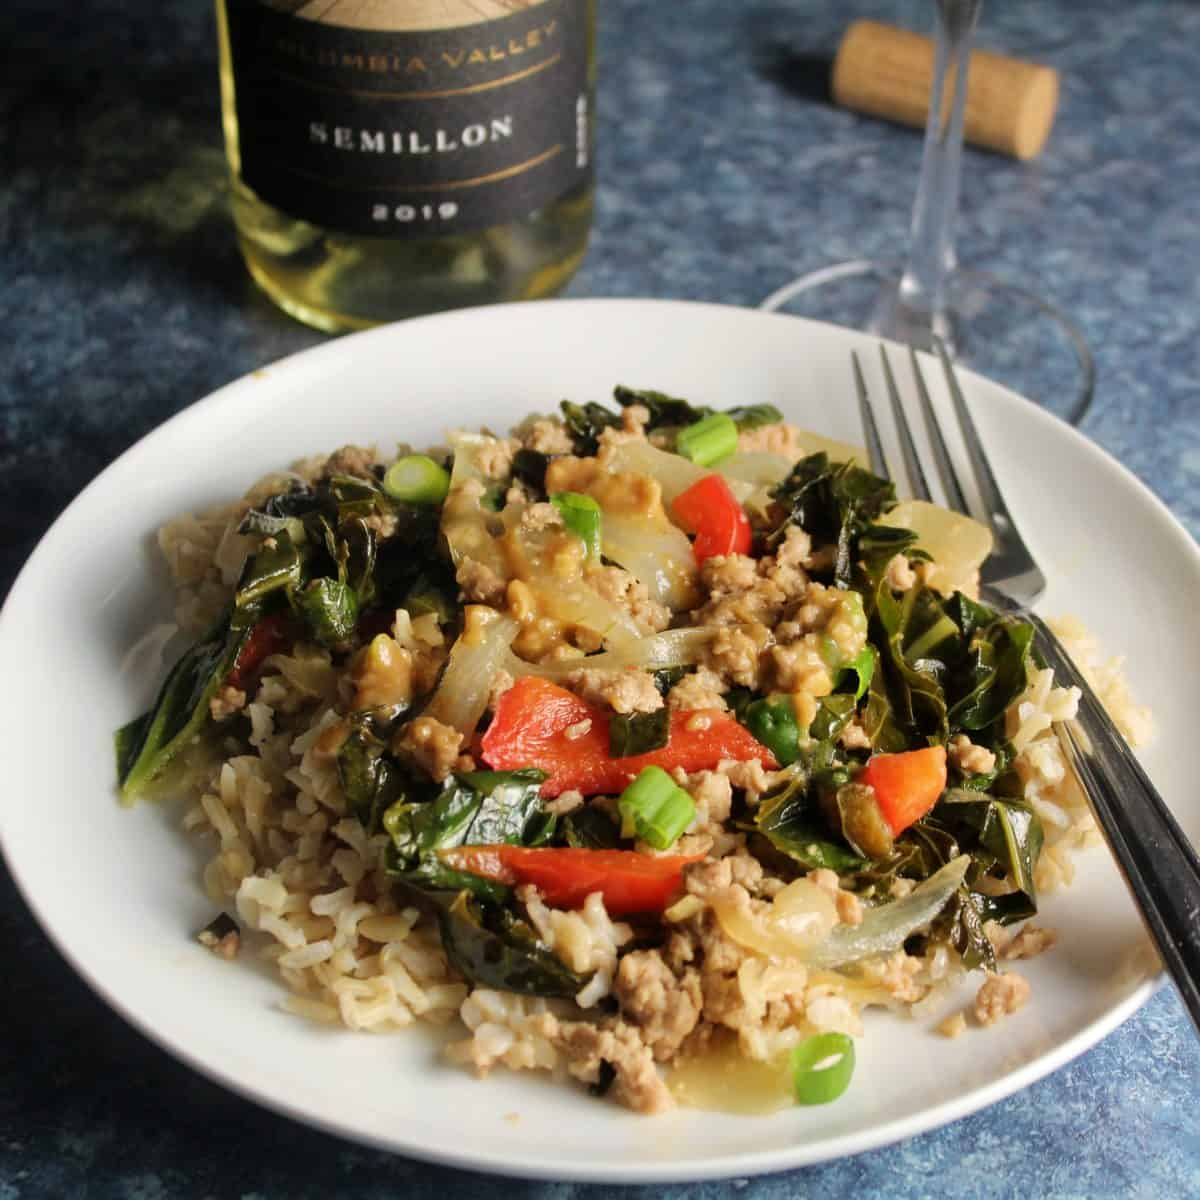 ground pork stir fry with collard greens, served over rice, on a white plate. Bottle of wine in the background.